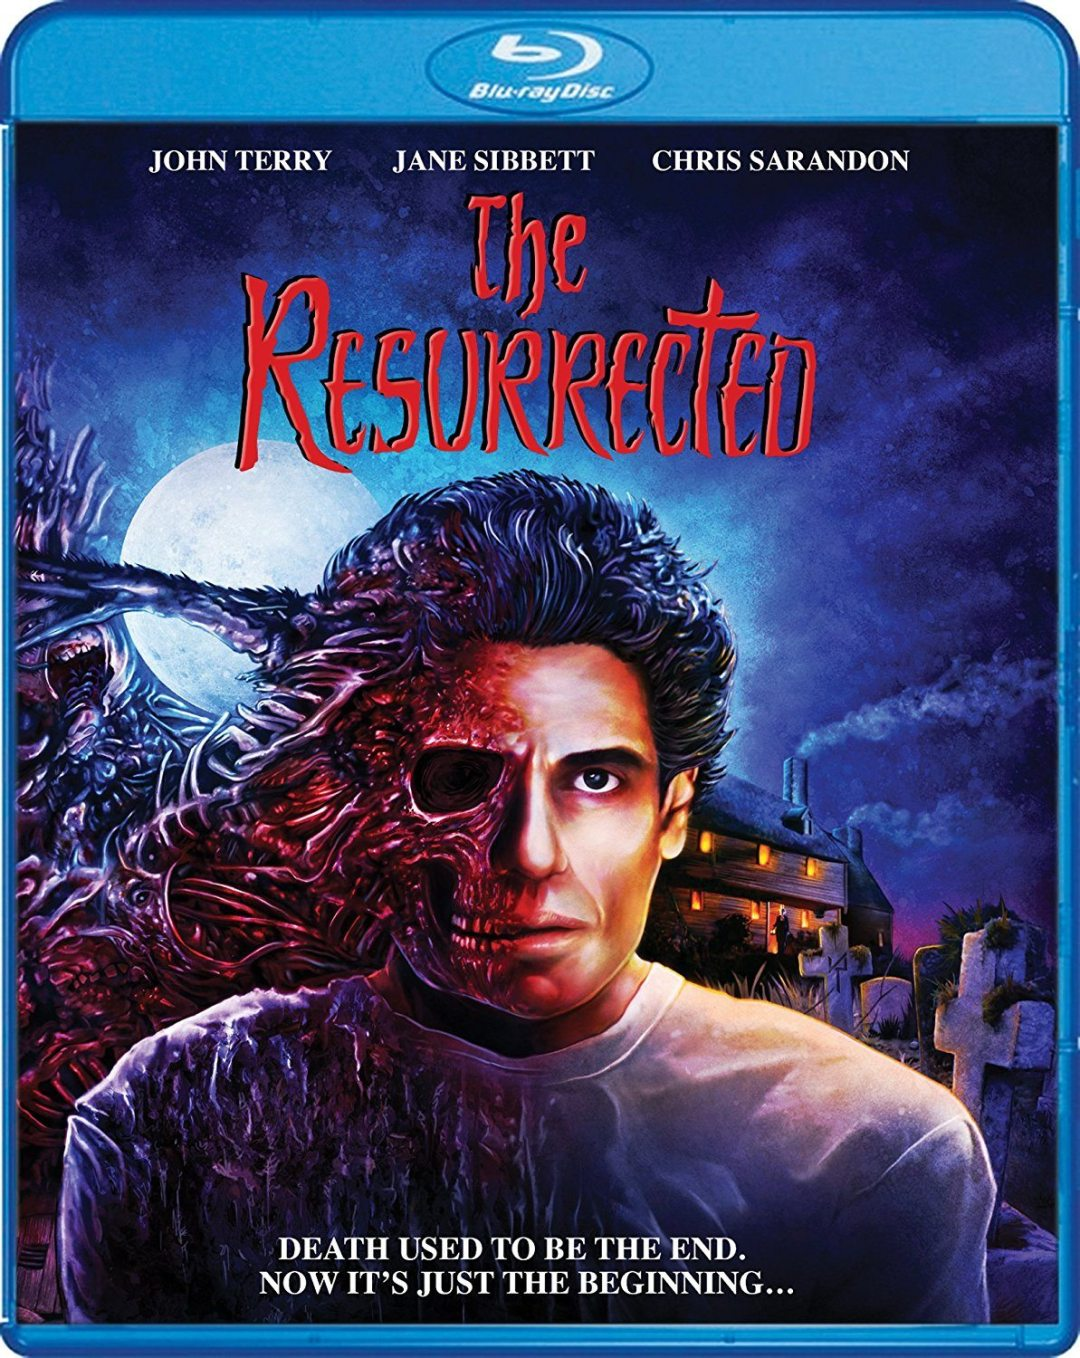 The Resurrected – Blu-ray Review